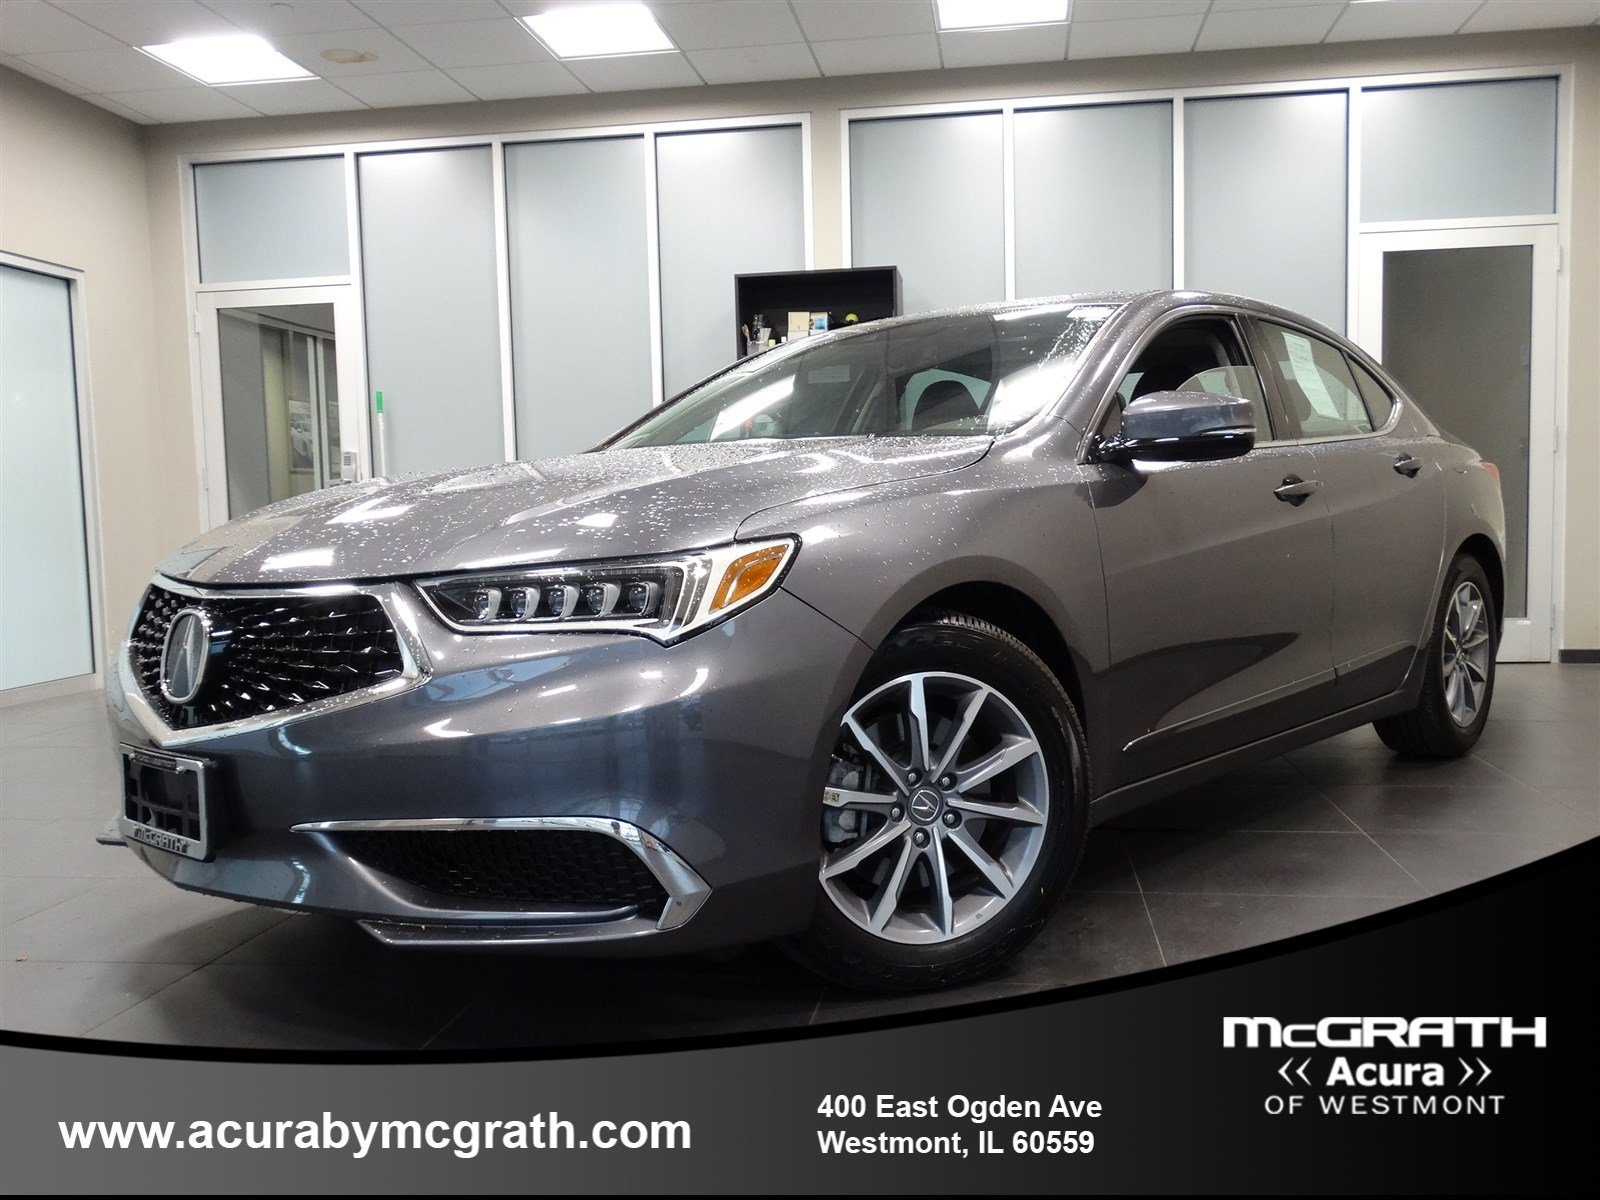 acura angle side dealers front row passenger exterior chicago association third mdx chicagoland